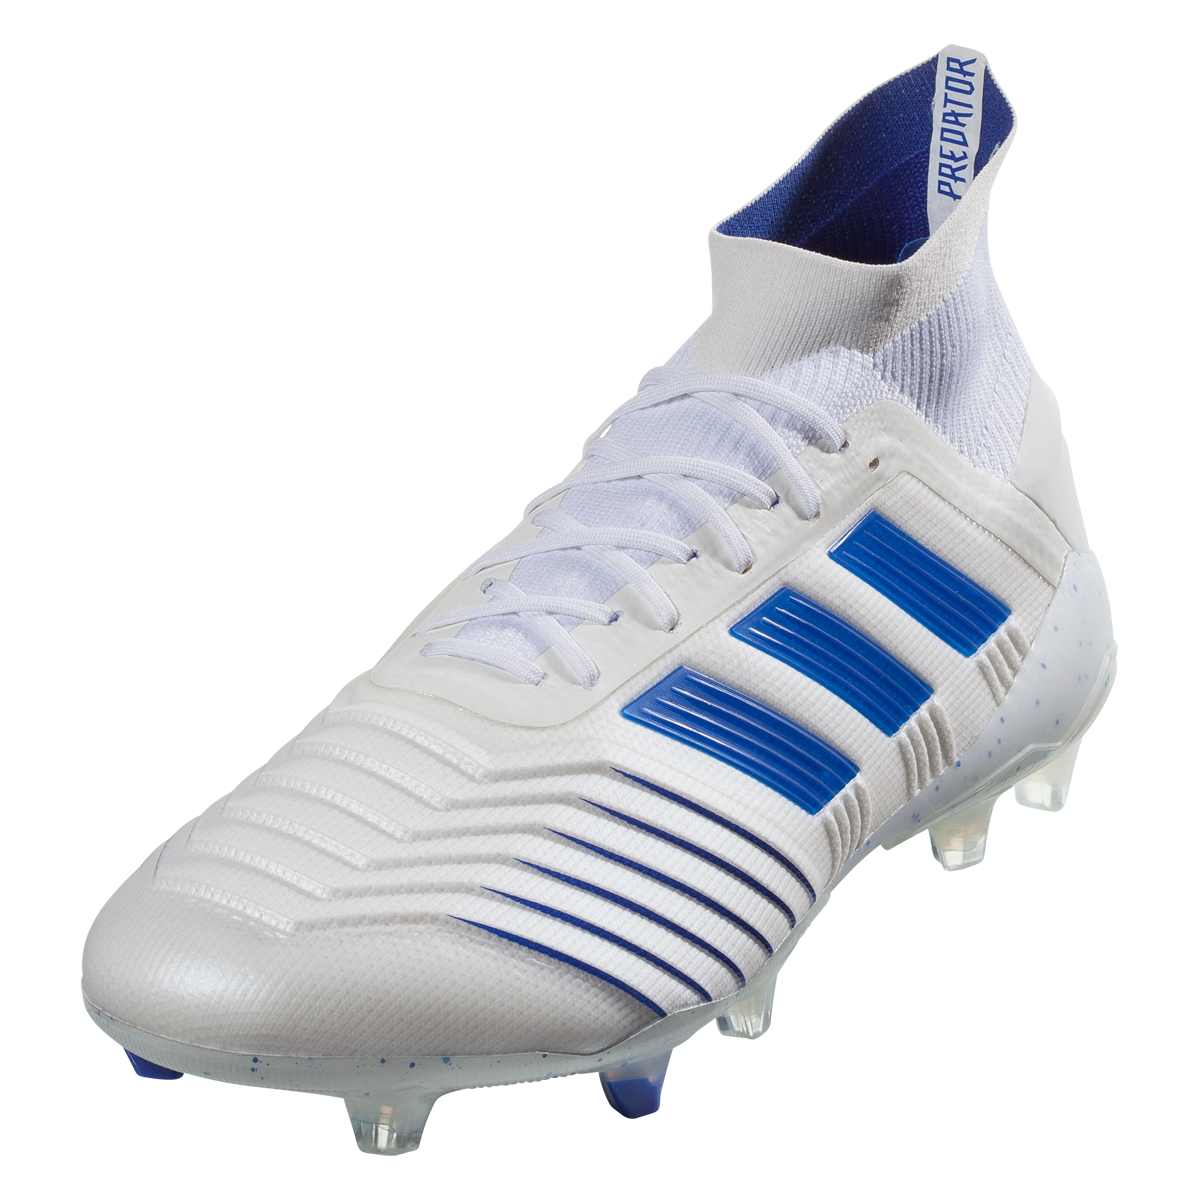 Adidas Predator 19 1 Fg Firm Ground Soccer Cleat White Blue 10 Adidas Soccer Shoes Soccer Cleats Best Soccer Cleats